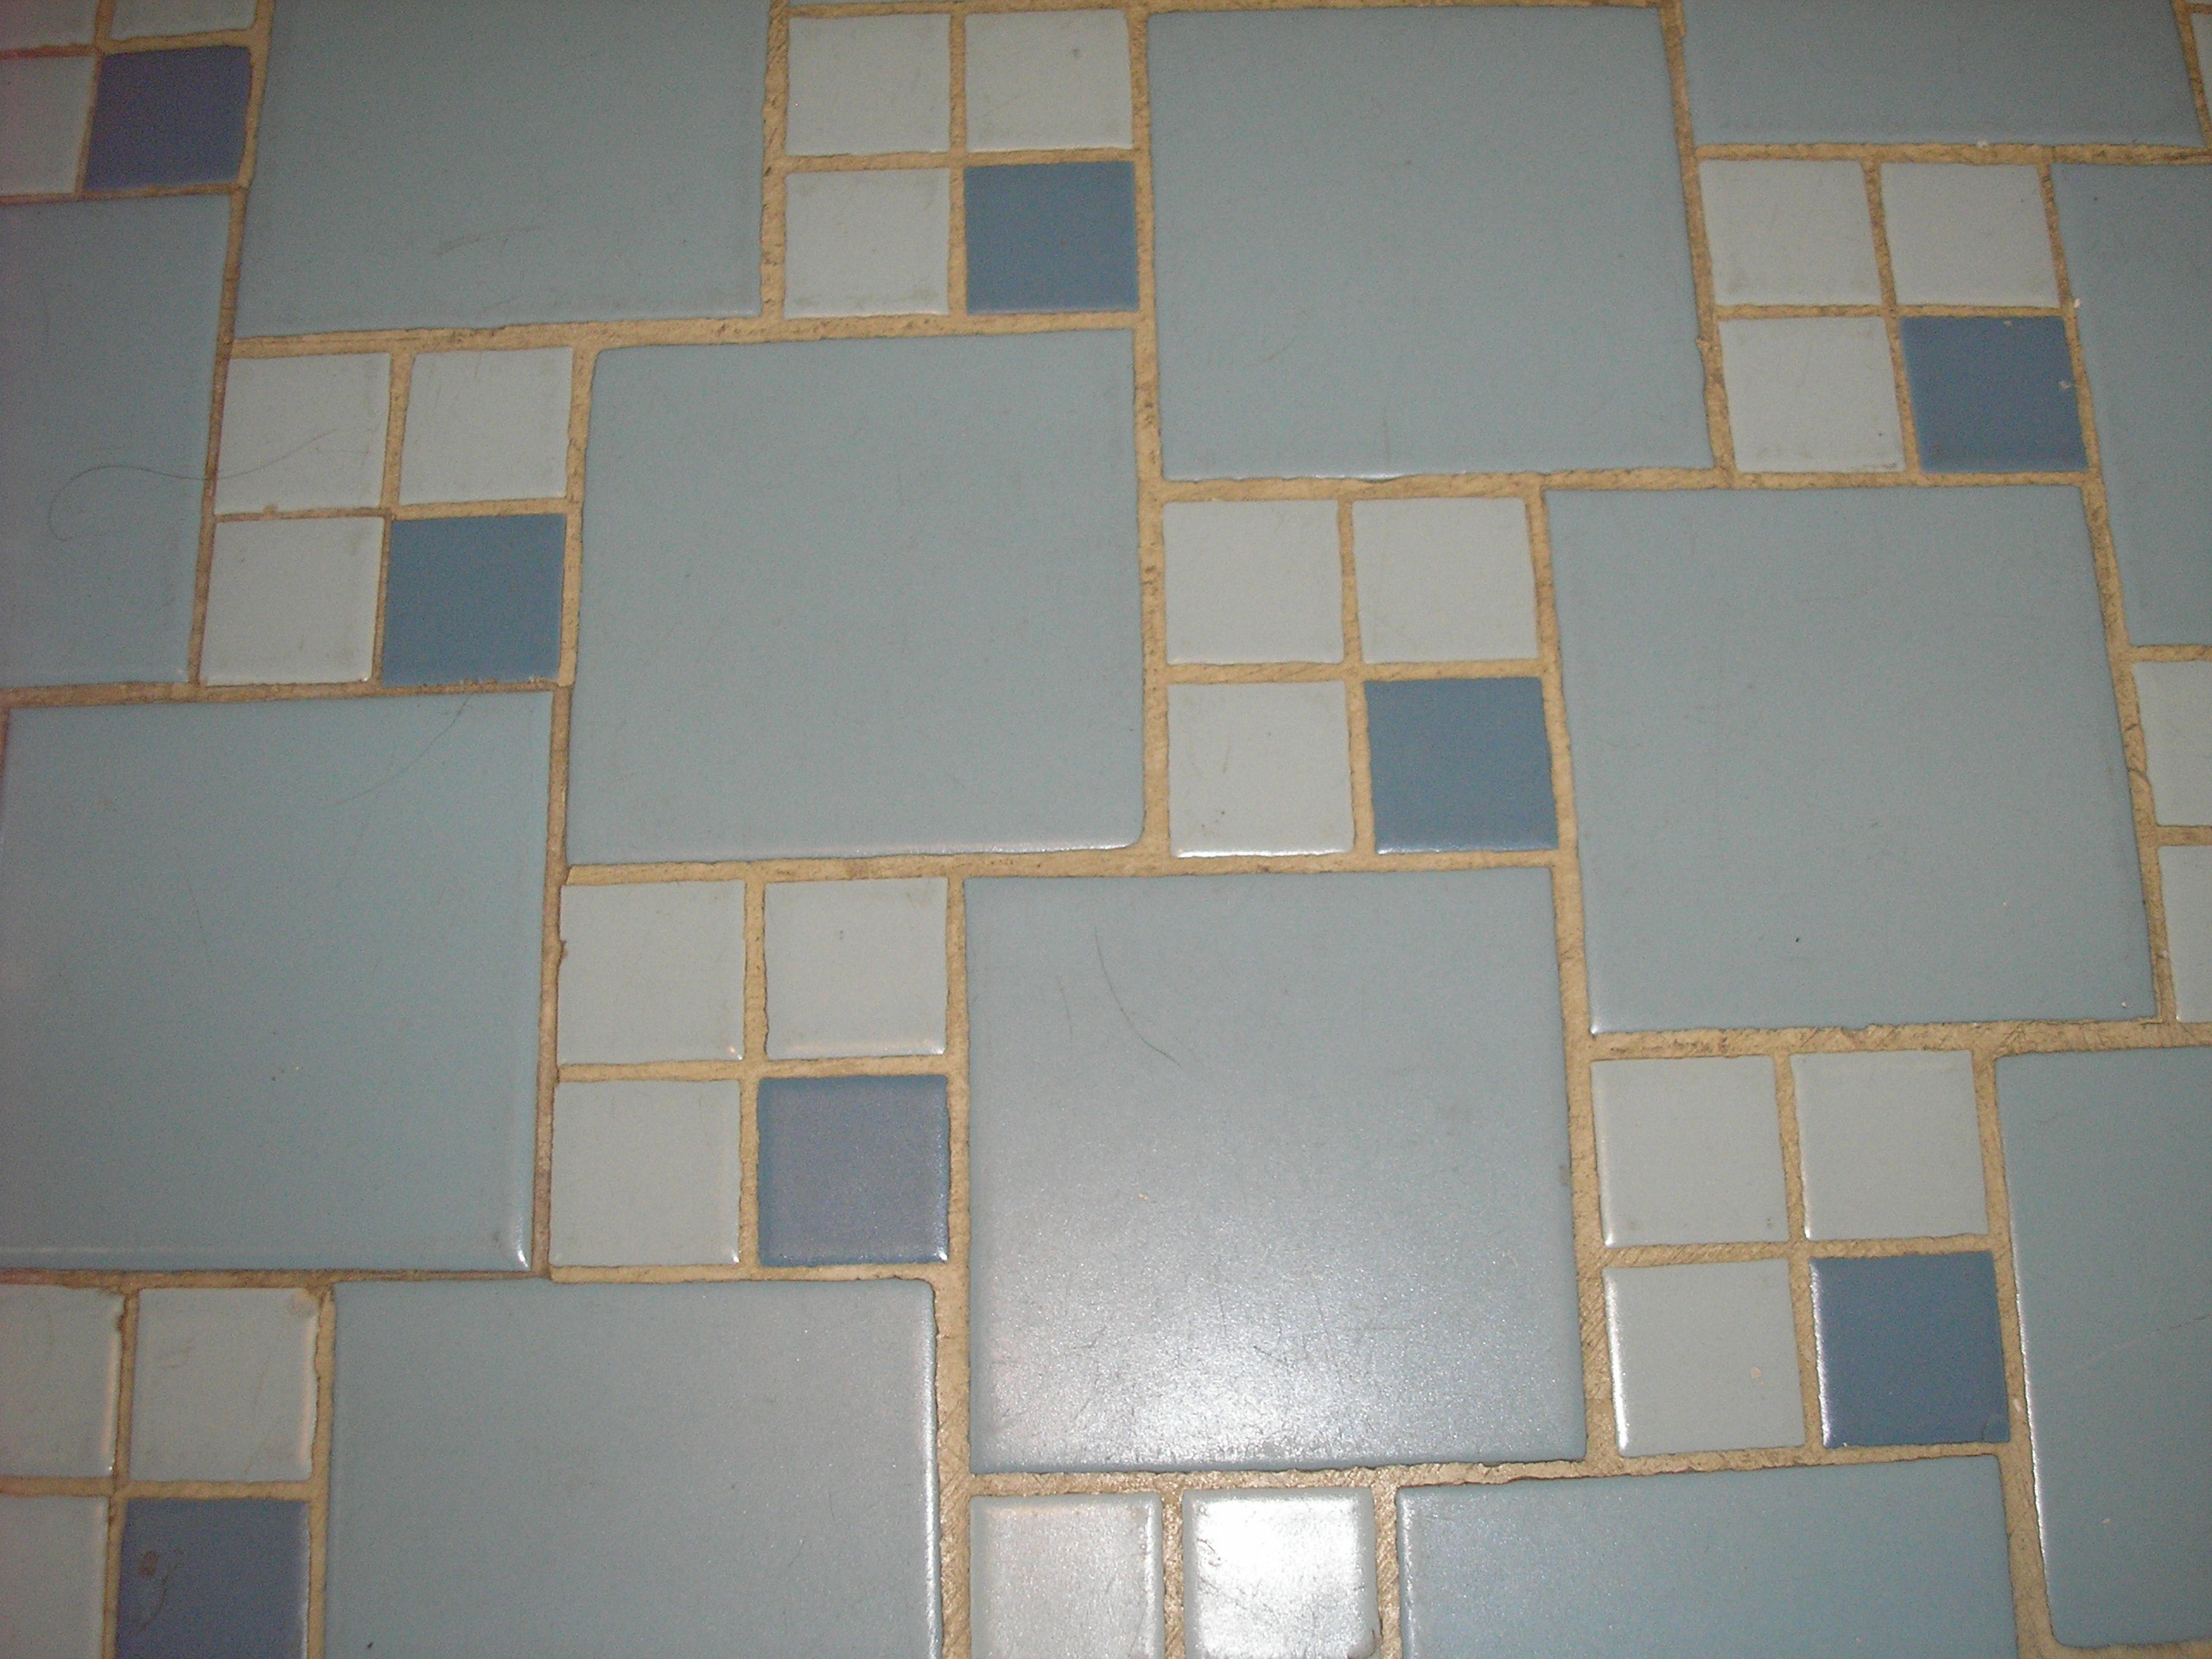 9 great ideas of ceramic tile patterns for bathroom 1 2 3 4 5 dailygadgetfo Gallery